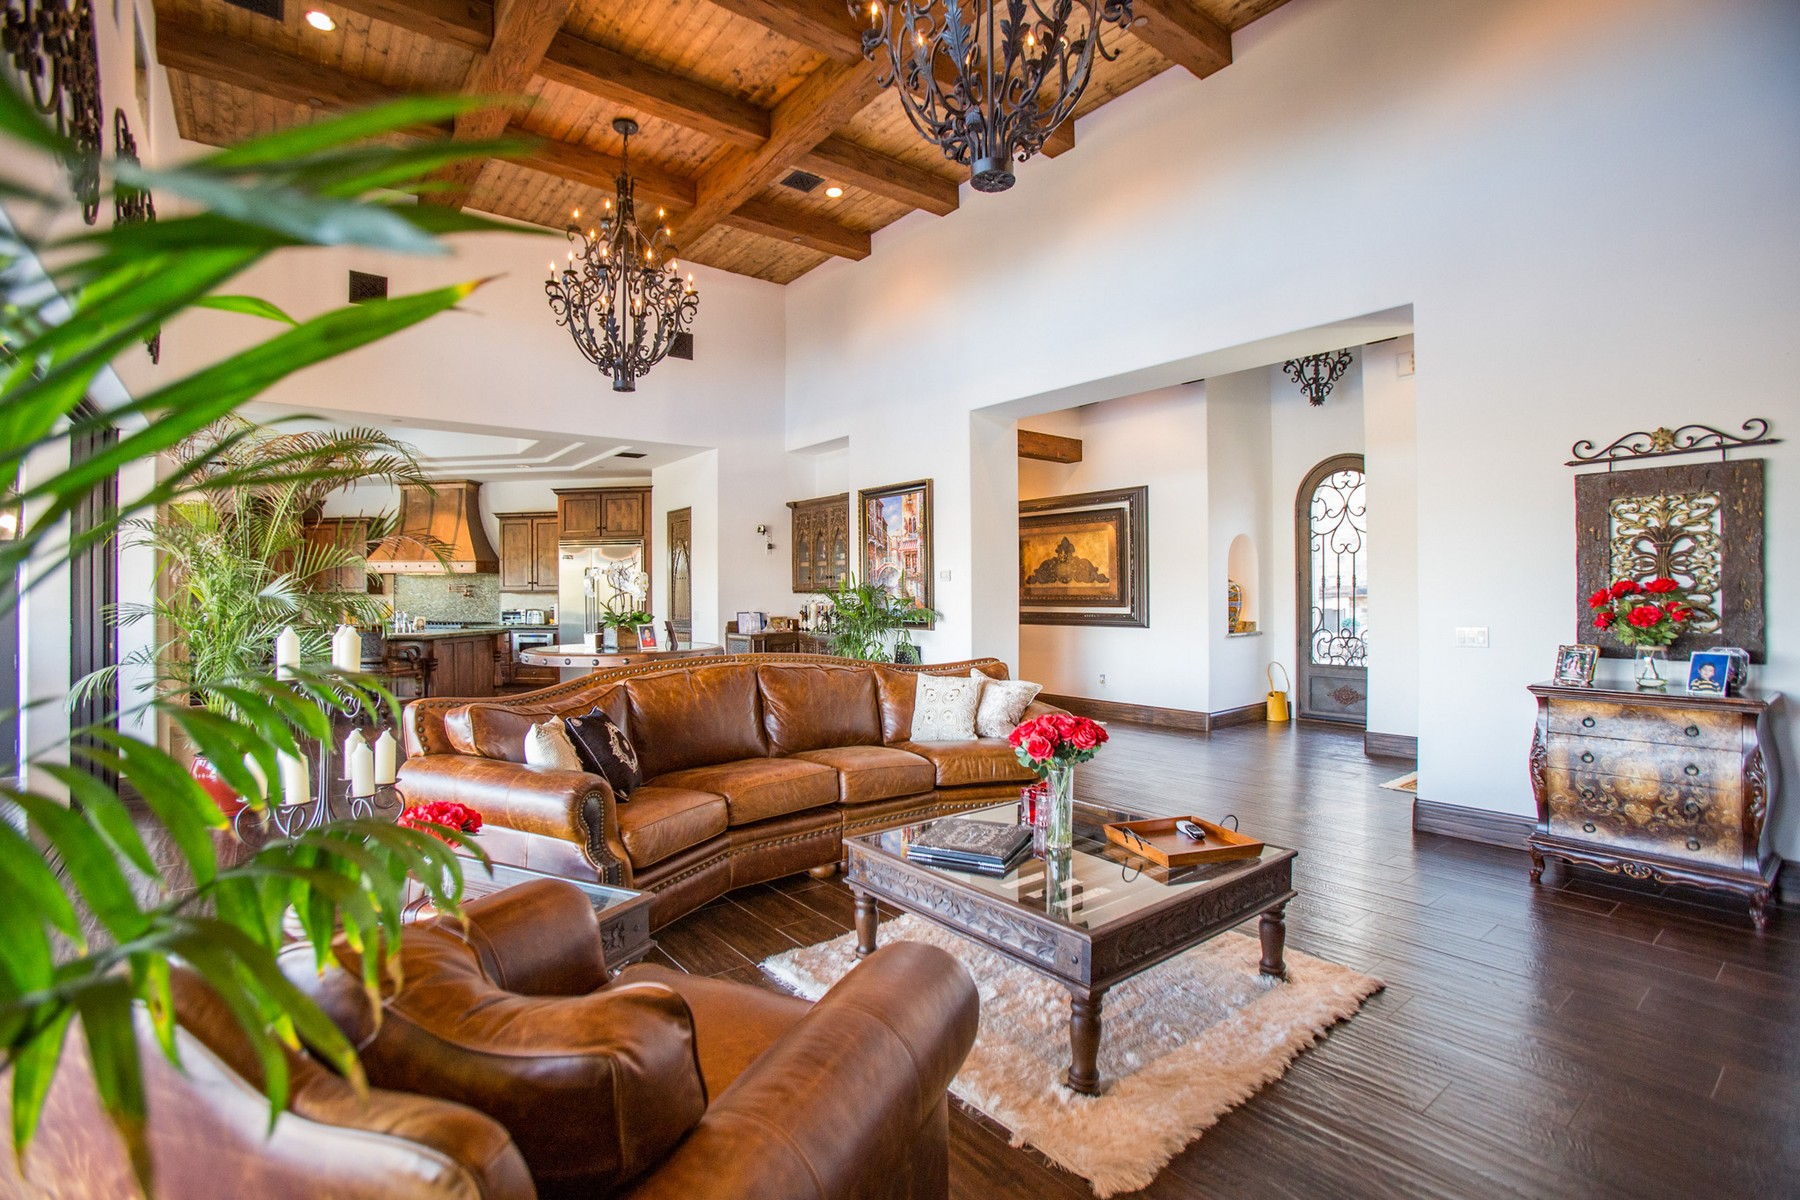 Additional photo for property listing at 17511 Caminito De Los Escoses  Rancho Santa Fe, California 92067 United States